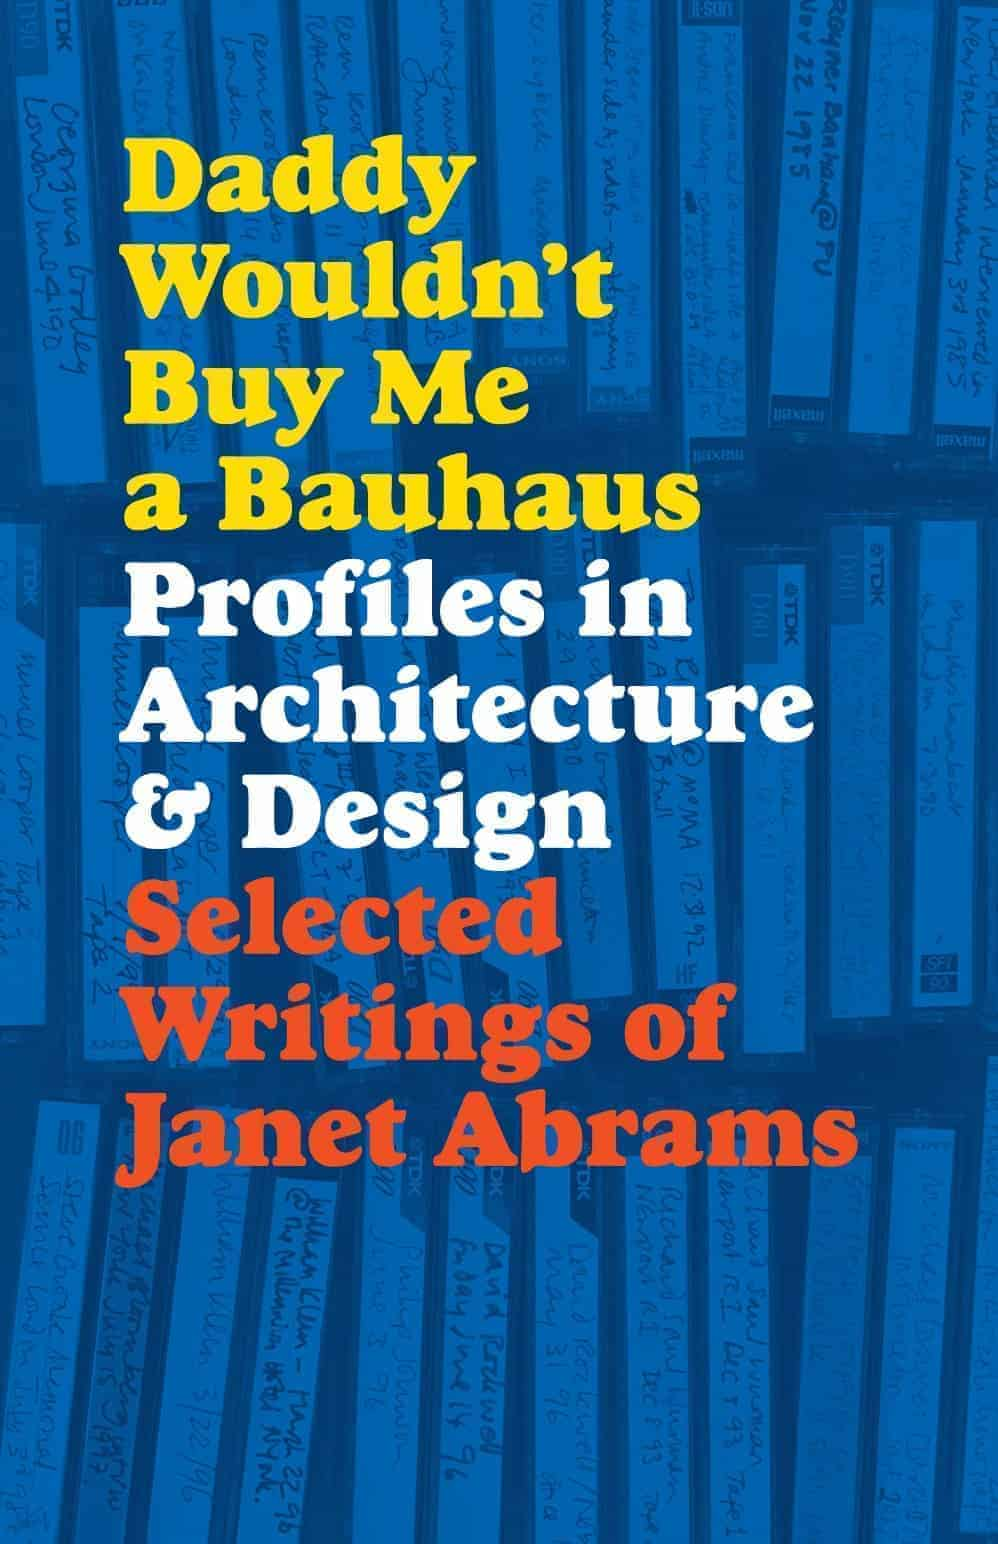 Daddy Wouldn't Buy Me a Bauhaus: Profiles in Architecture and Design